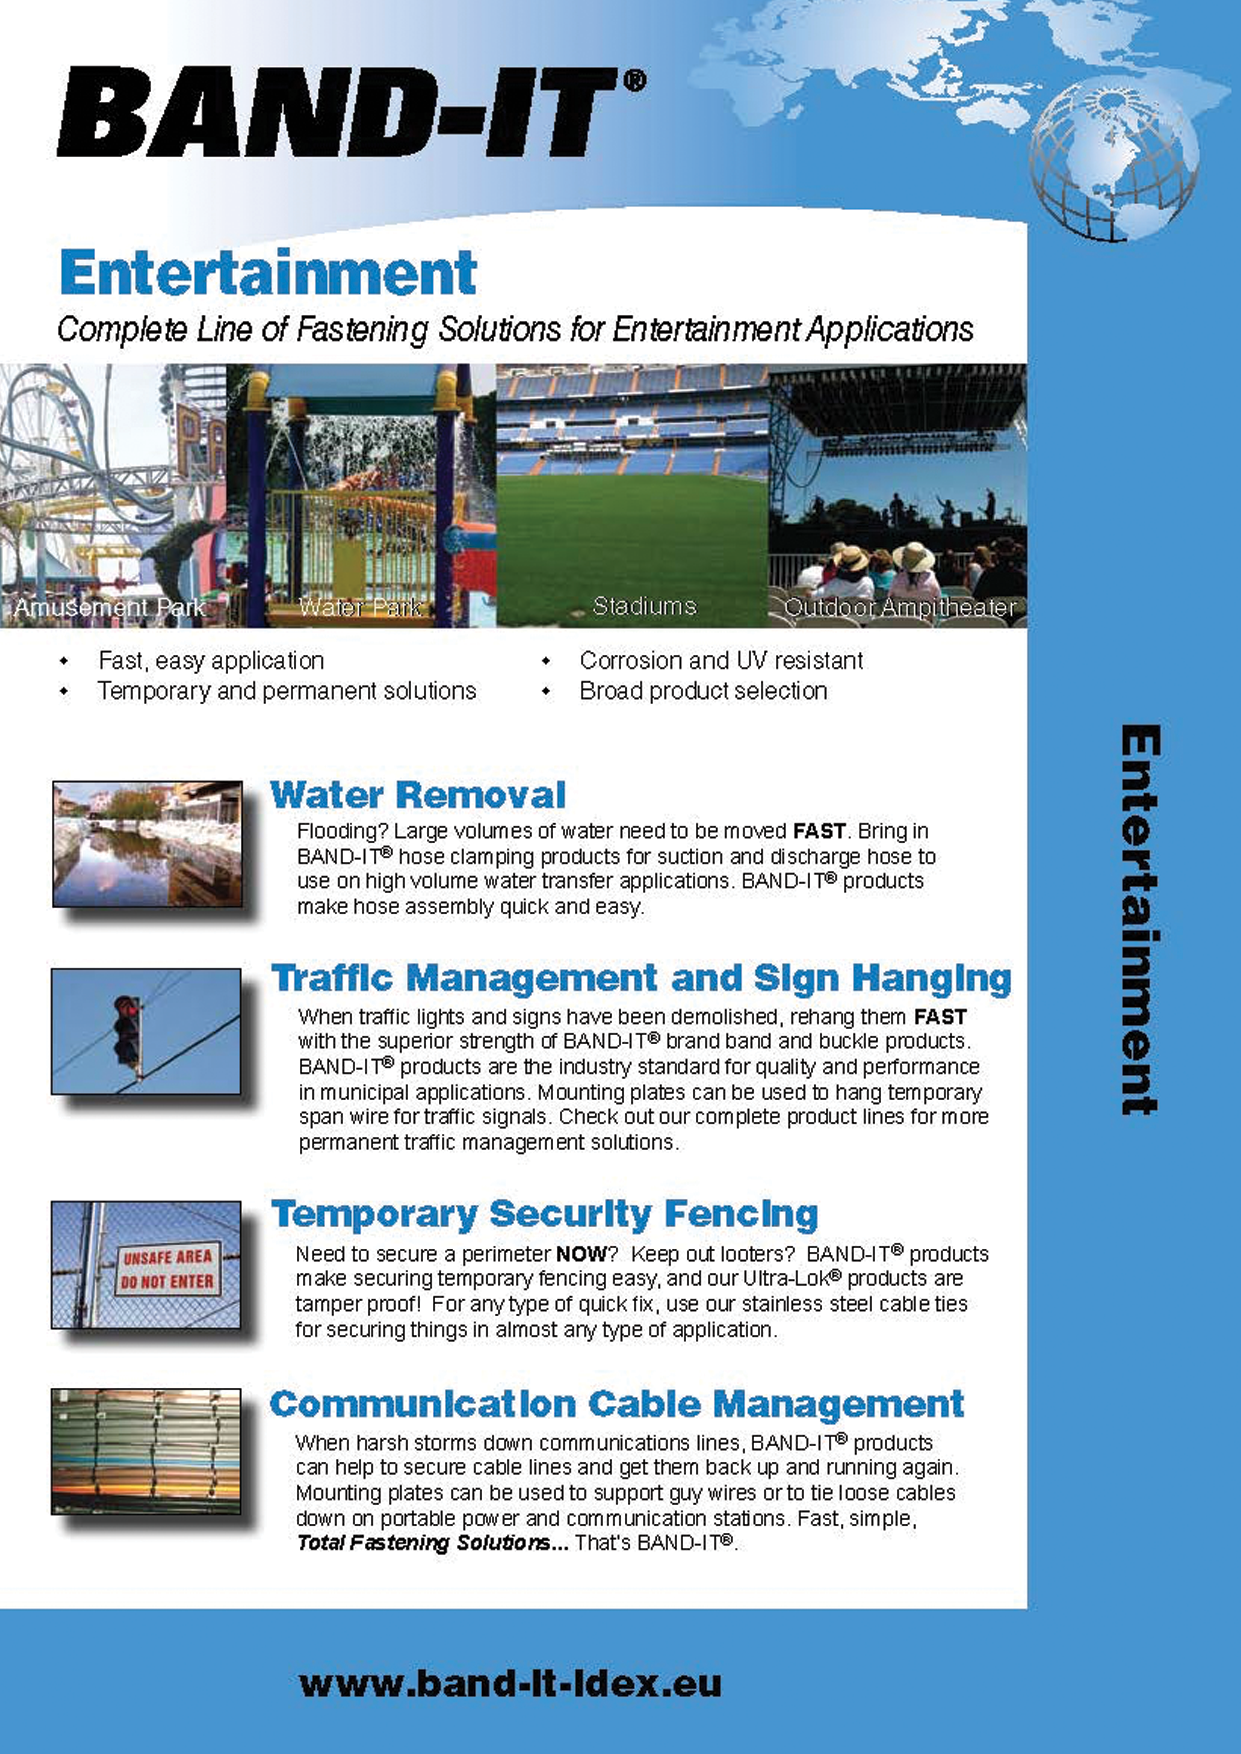 Entertainment Industry - Complete Line of Fastening Solutions for Disaster Recovery Applications